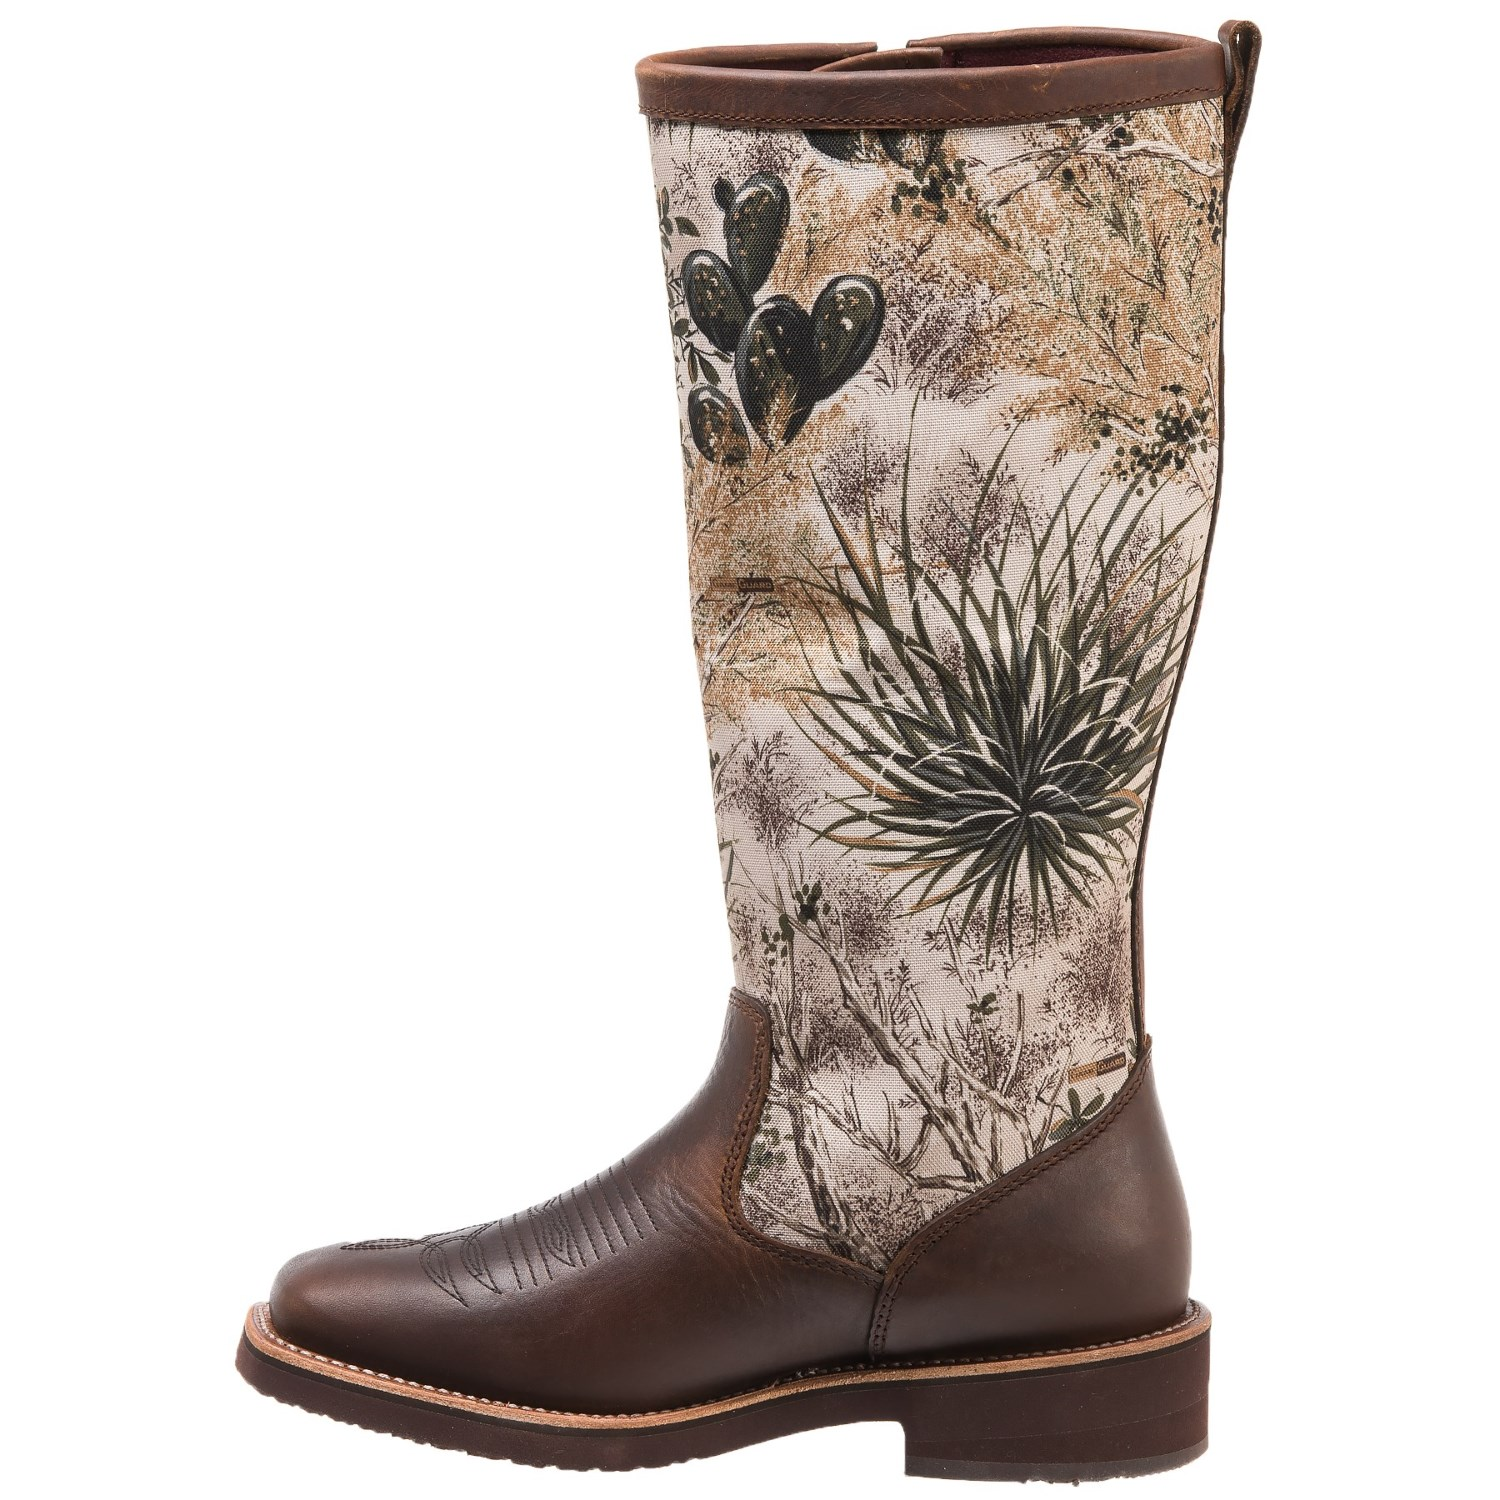 "db000b48ee Chippewa Gameguard Snake Boots - 17"", Square Toe, Factory 2nds, Camo  Barbary Brown (For Men)"